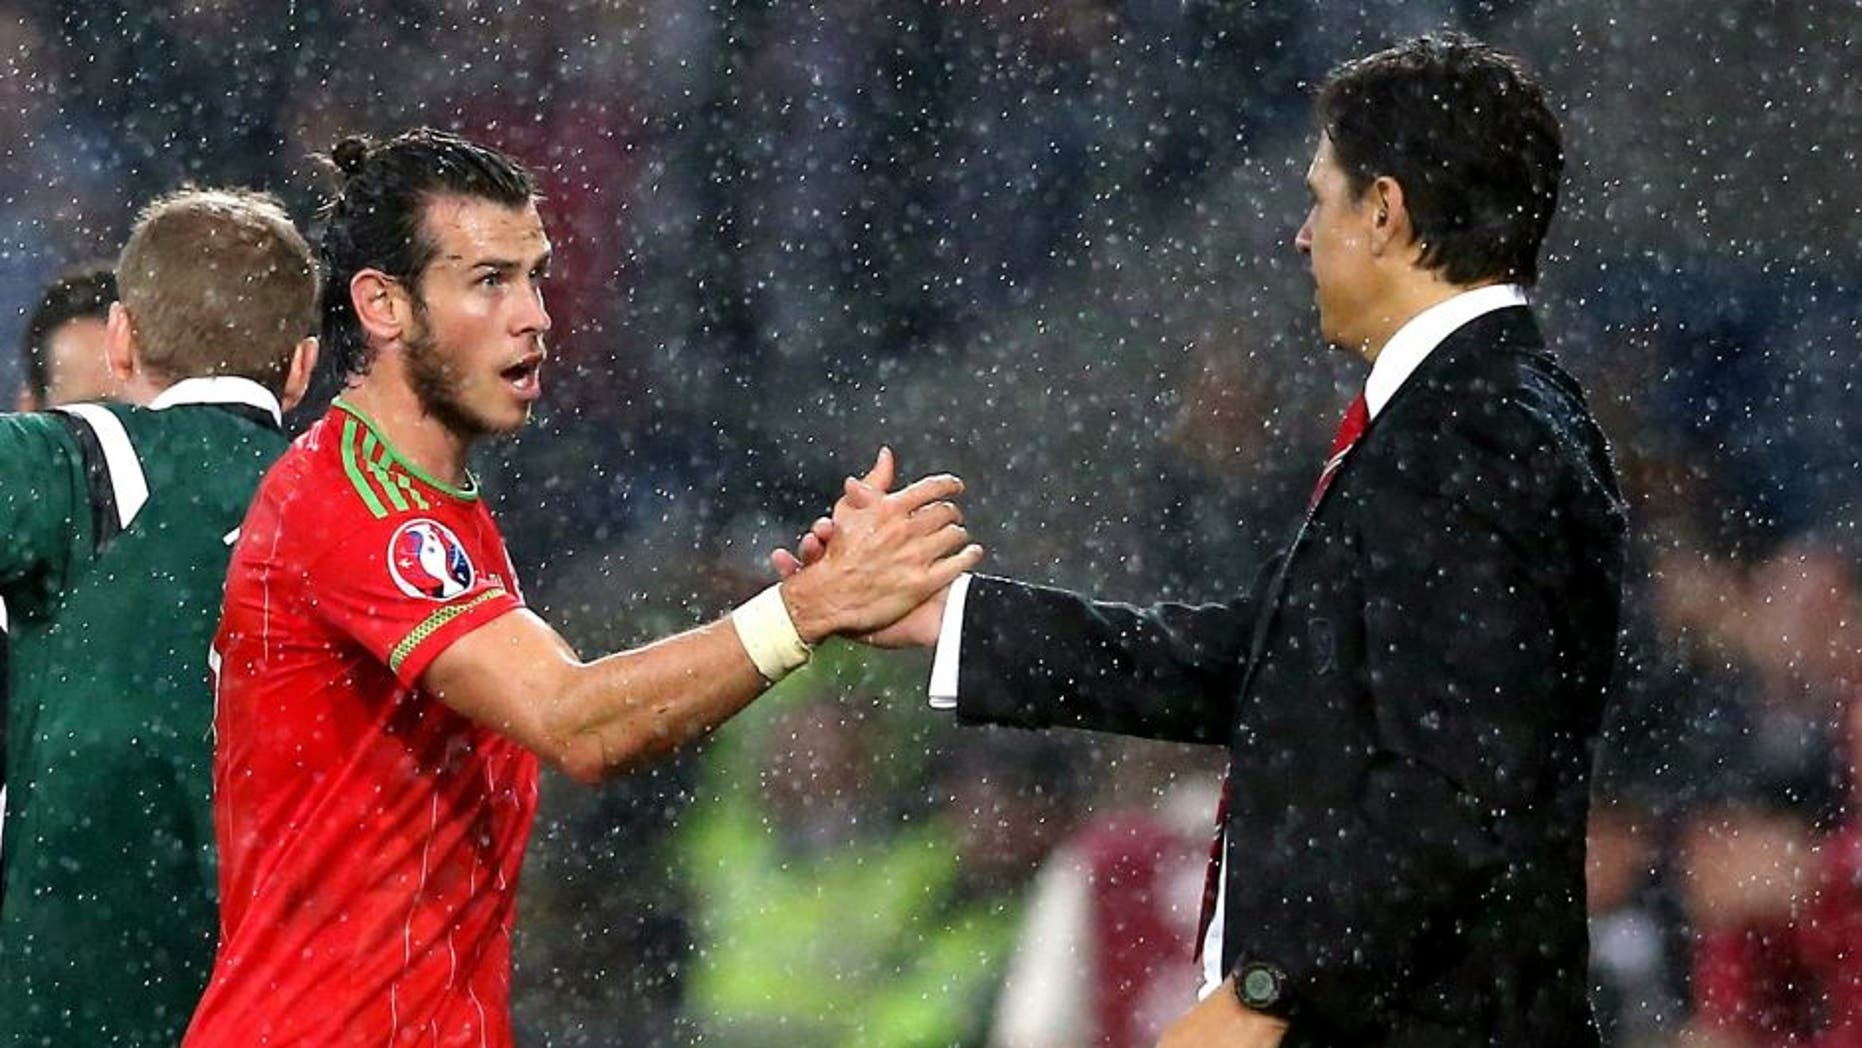 CARDIFF, WALES - JUNE 12: Gareth Bale of Wales, who scored the winning goal shakes hands with Wales manager Chris Coleman as he is subsituted during the UEFA EURO 2016 qualifying match between Wales and Belgium at the Cardiff City Stadium on June 12, 2015 in Cardiff, United Kingdom. (Photo by David Rogers/Getty Images)